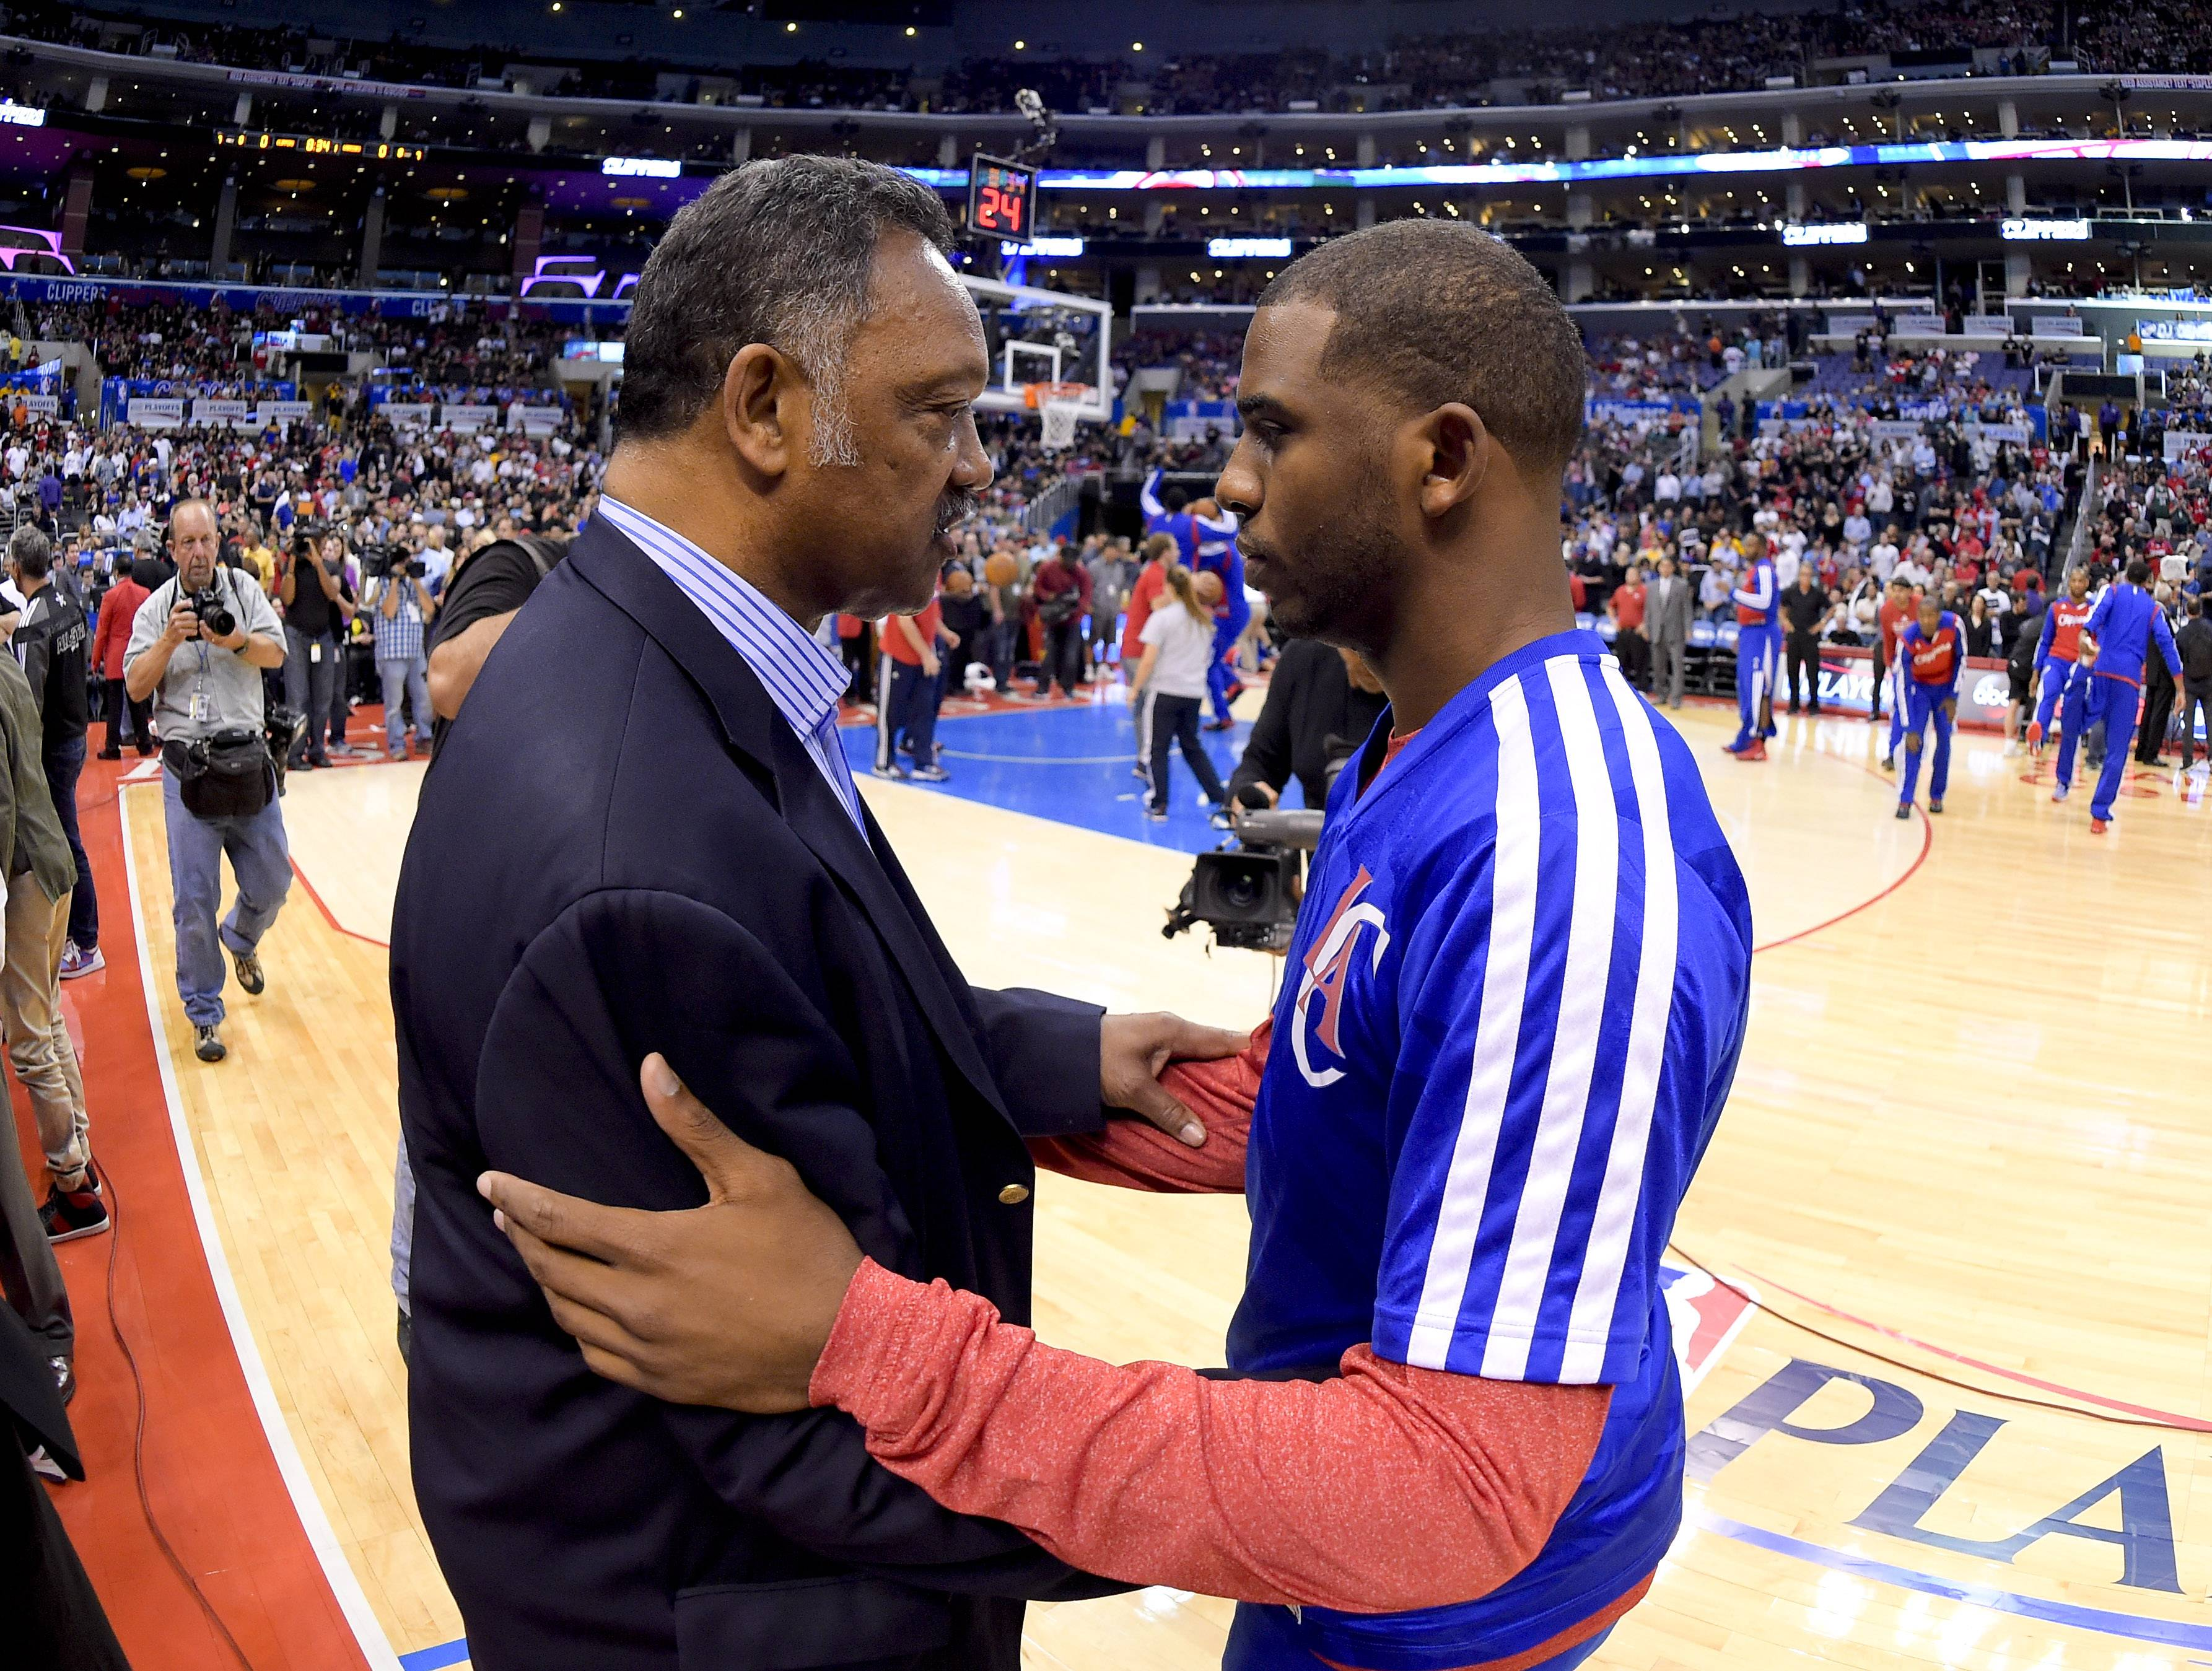 The Rev. Jesse Jackson, left, greets Los Angeles Clippers guard J.J. Redick before Game 5 of the Clippers' opening-round NBA basketball playoff series against the Golden State Warriors Tuesday in Los Angeles.